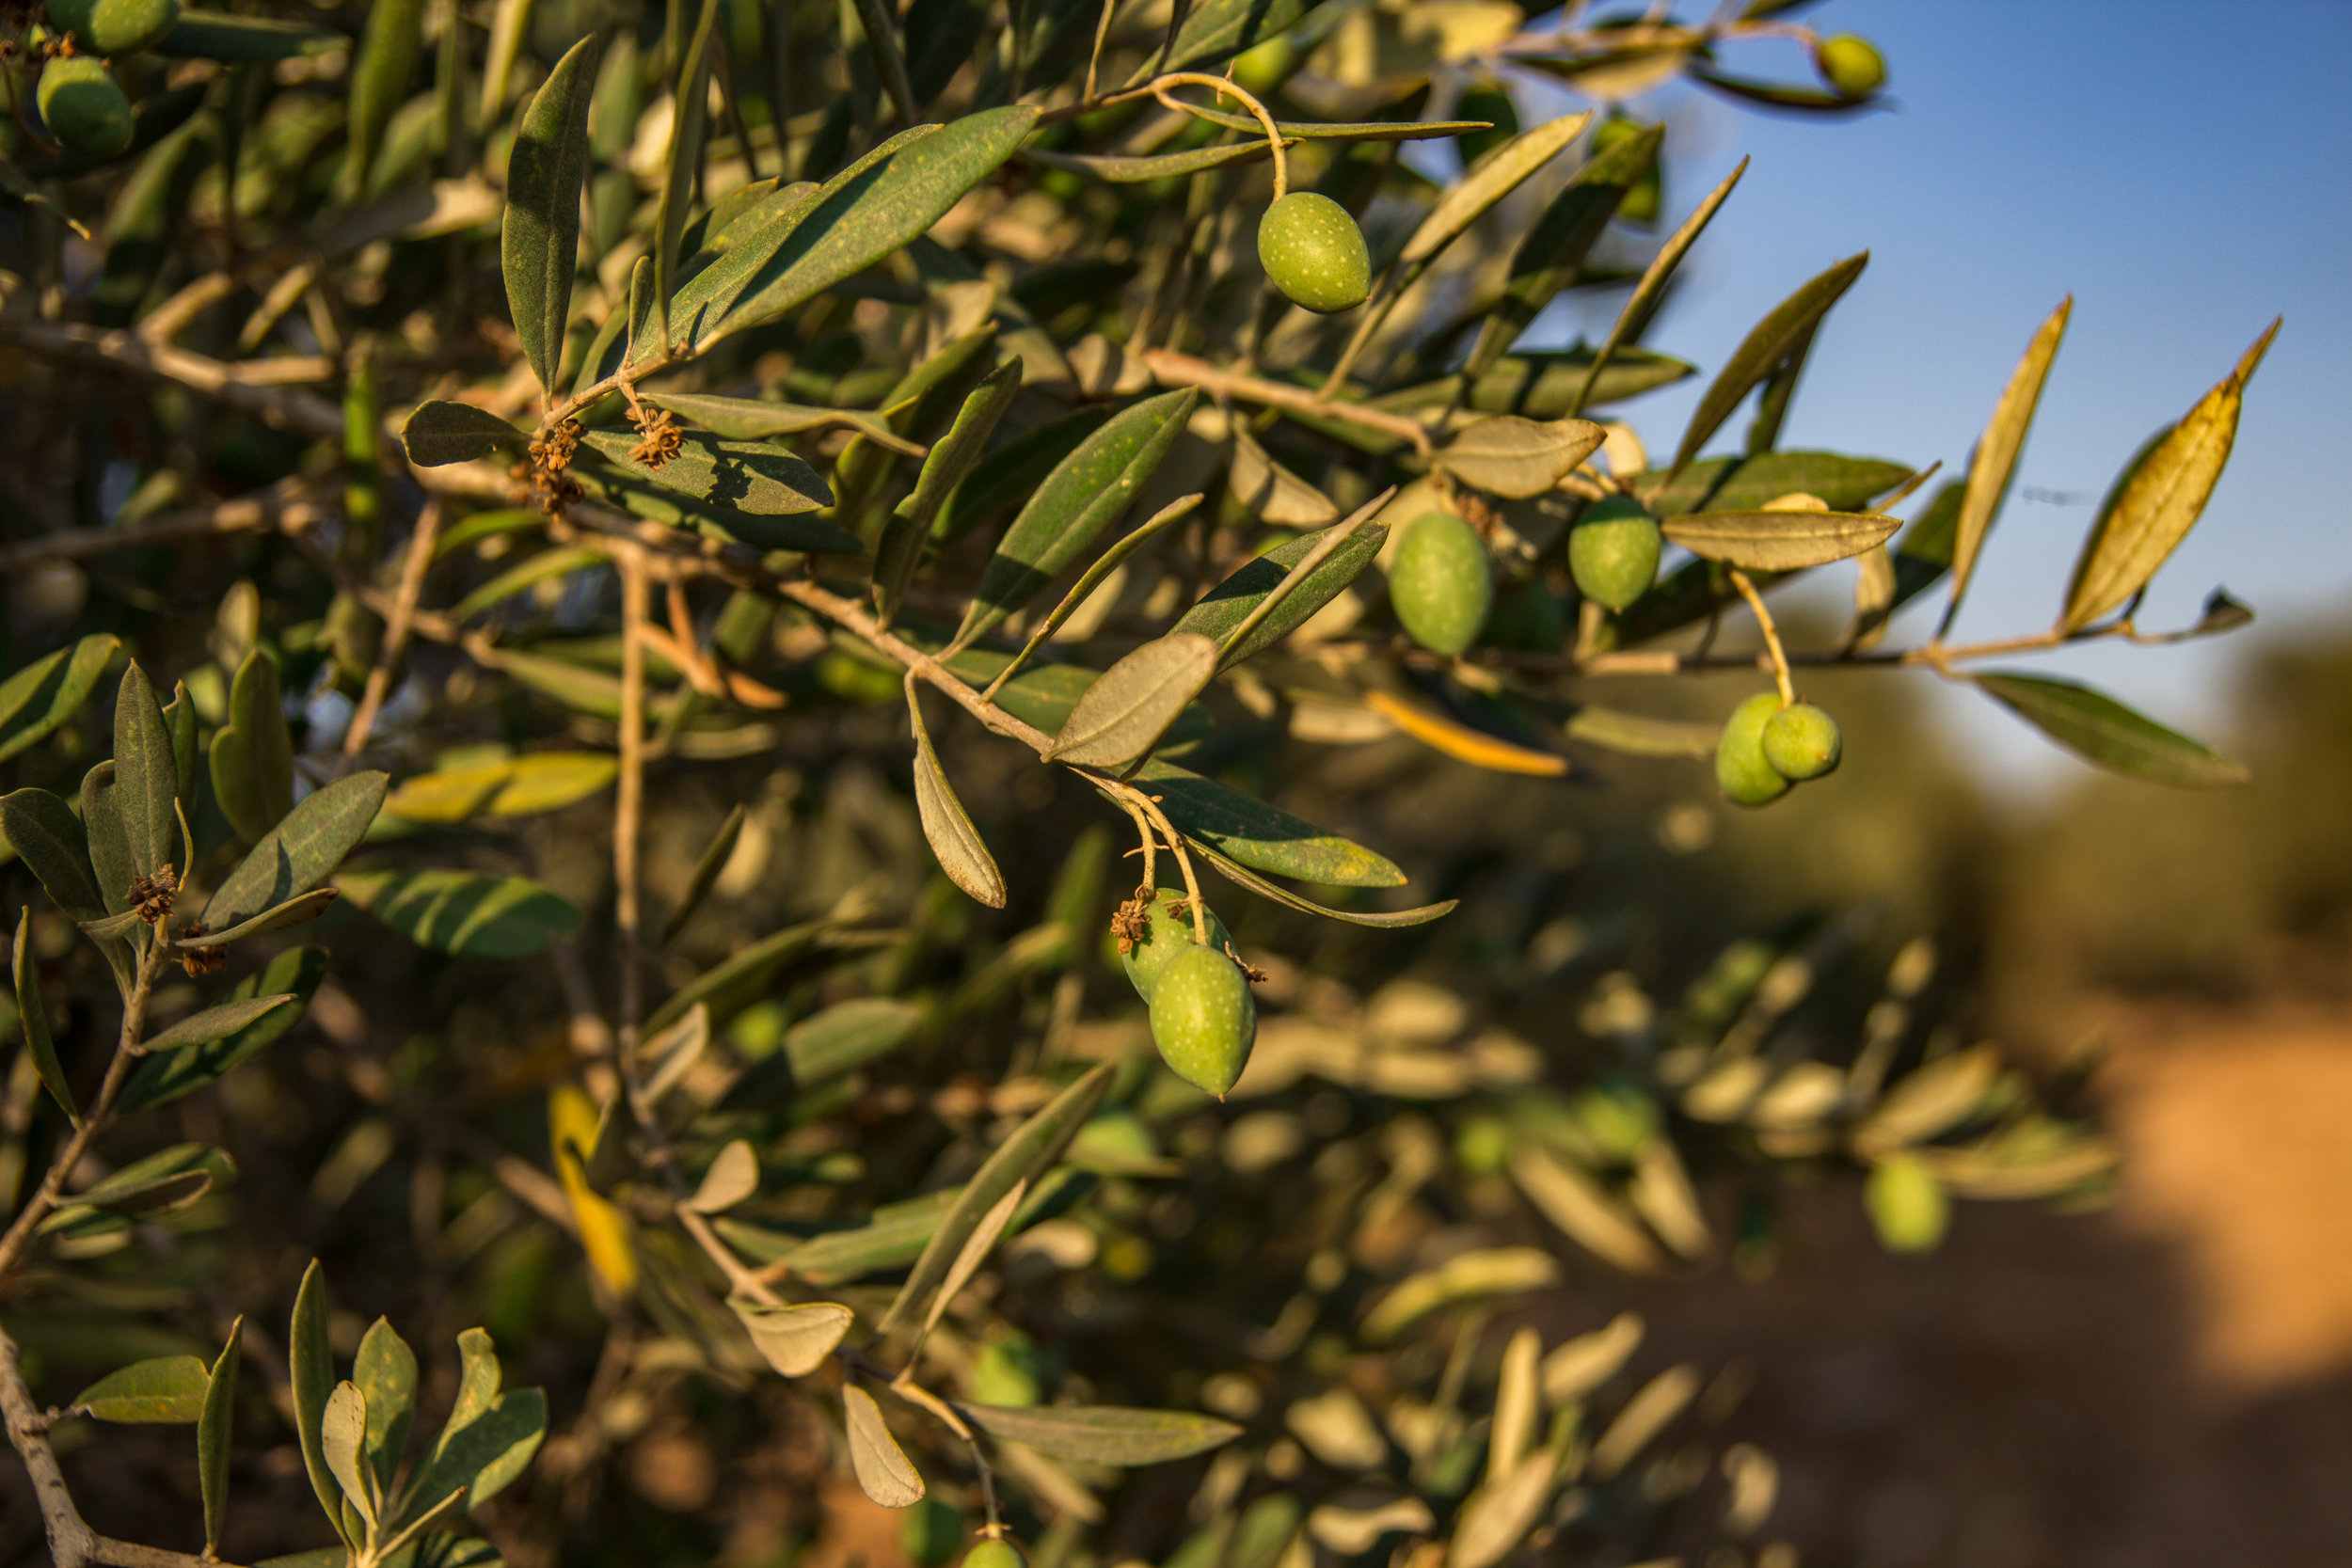 We took a short walk through an olive grove to see the scenery - it was so beautiful!  I'm determined to make my own olives some day.